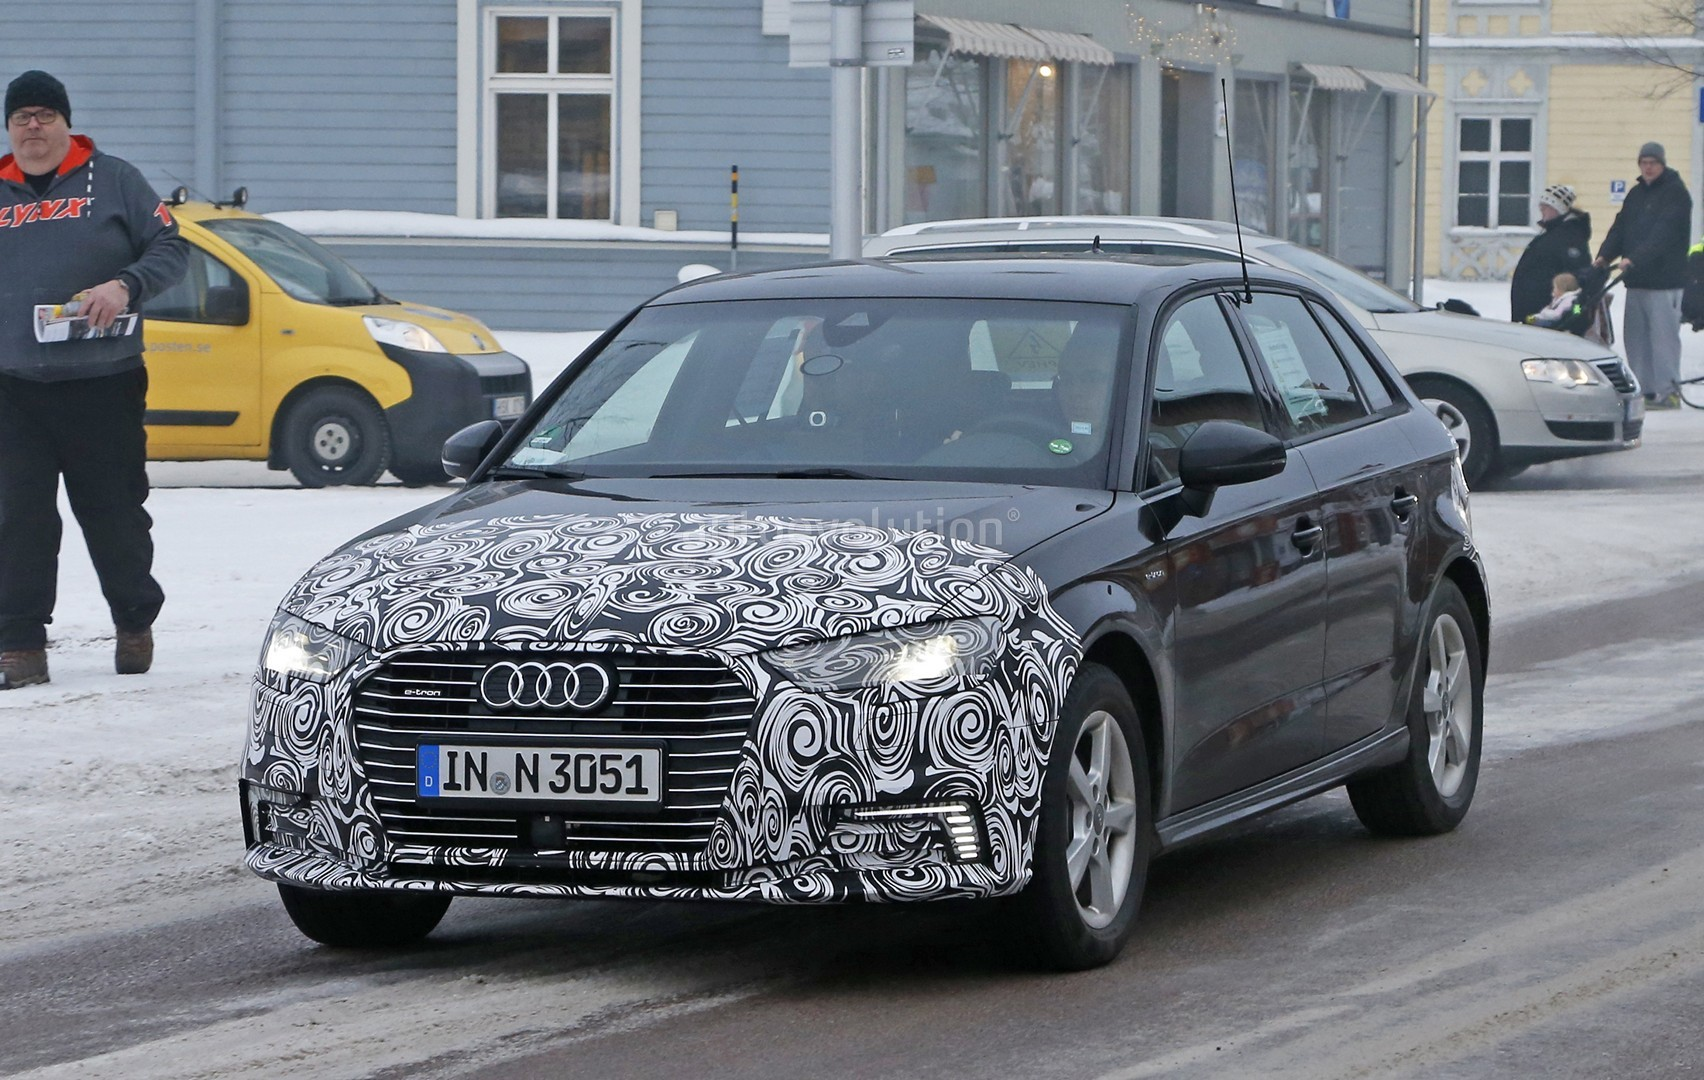 2017 Audi A3 e-tron Facelift Shows A4 Headlights and New LEDs - autoevolution